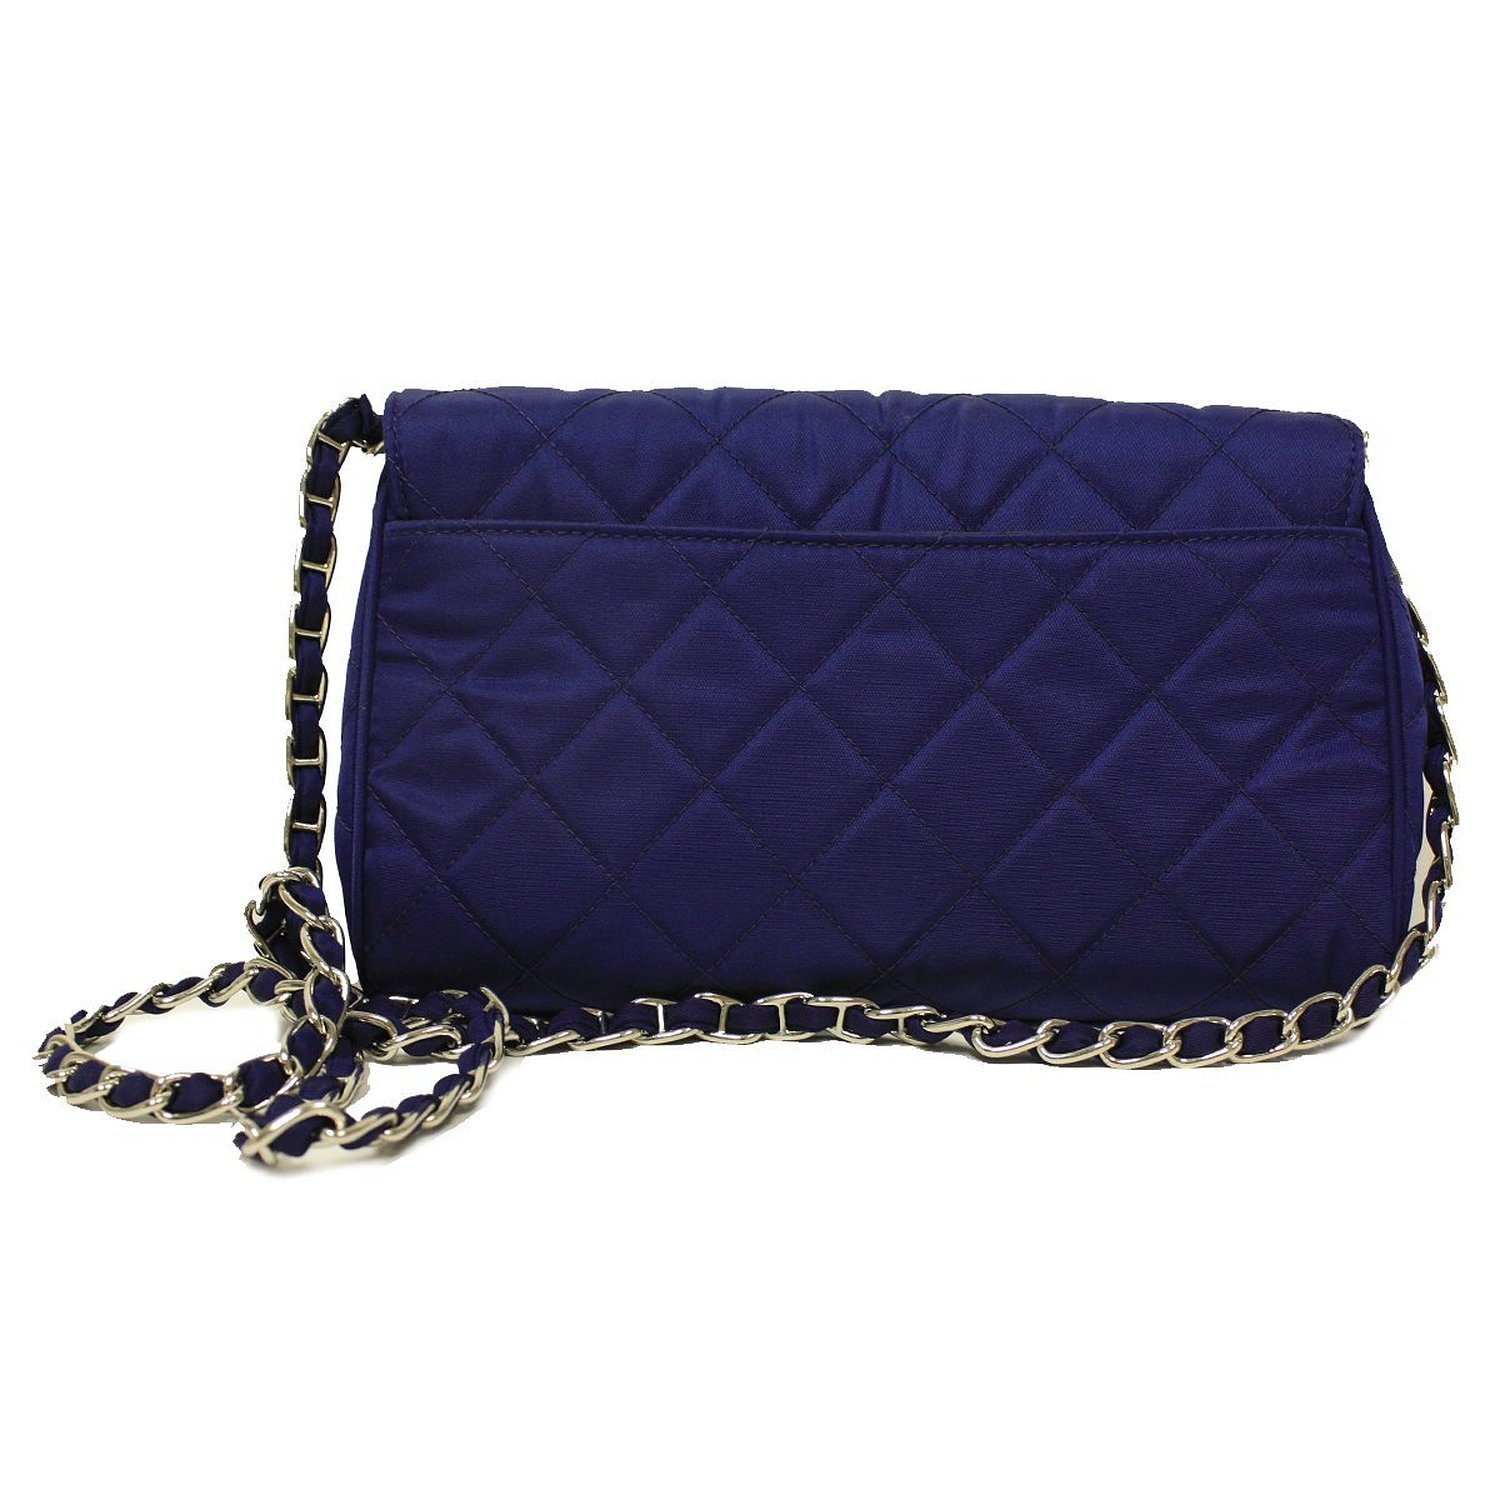 c4e83638ee71d6 Prada Royal Blue Tessuto Pattina Quilted Nylon Leather Chain Shoulder Bag  BP0584: Amazon.ca: Shoes & Handbags